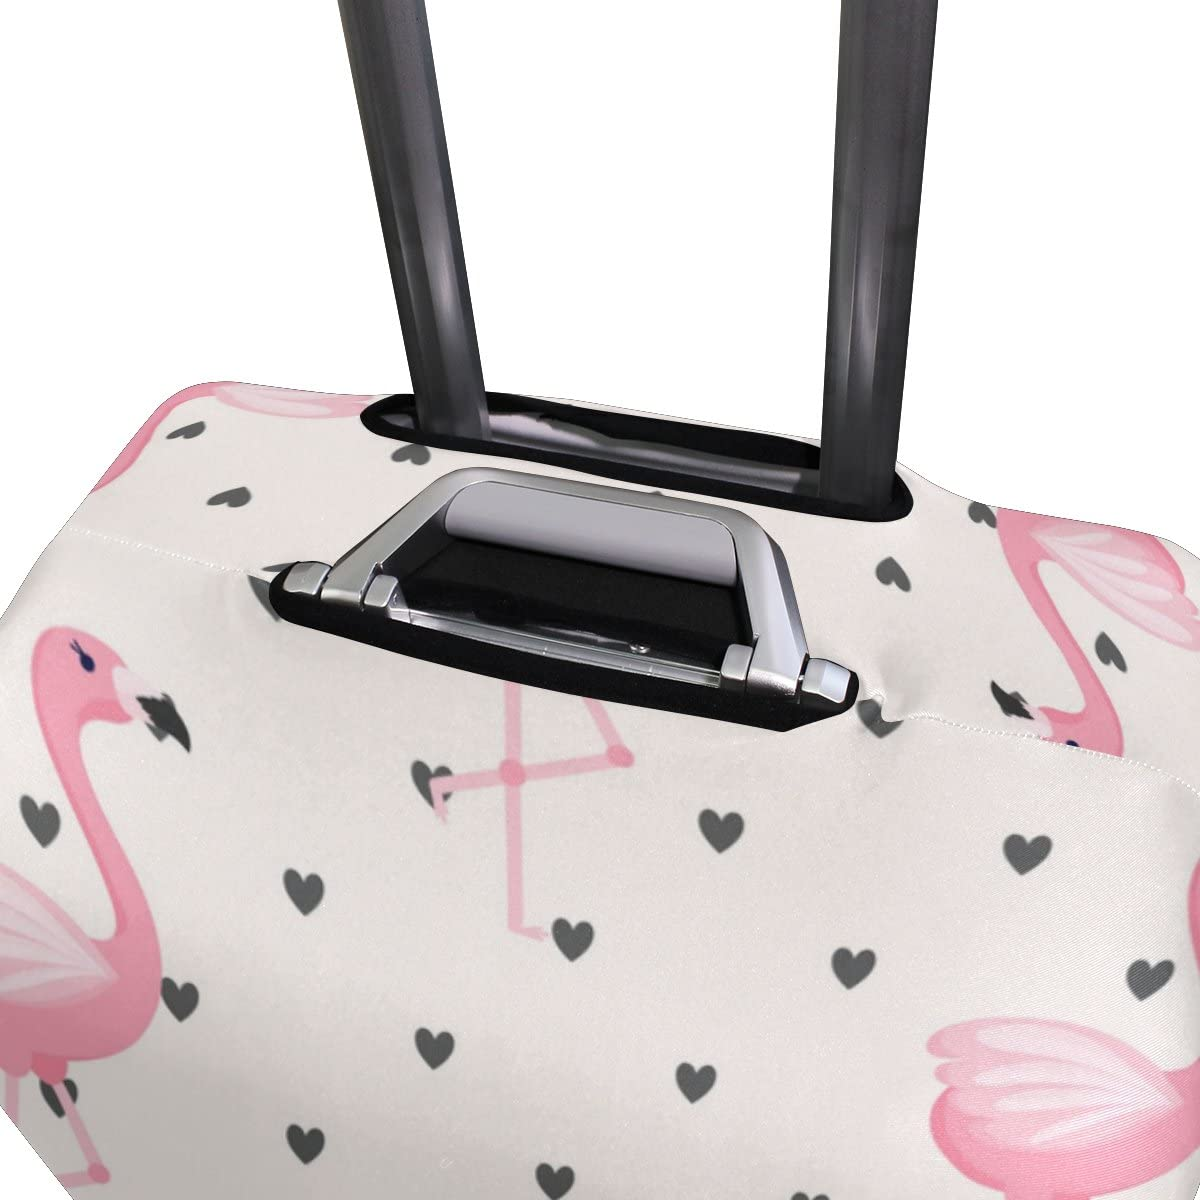 Elastic Travel Luggage Cover Tropical Flamingo Pattern Suitcase Protector for 18-20 Inch Luggage